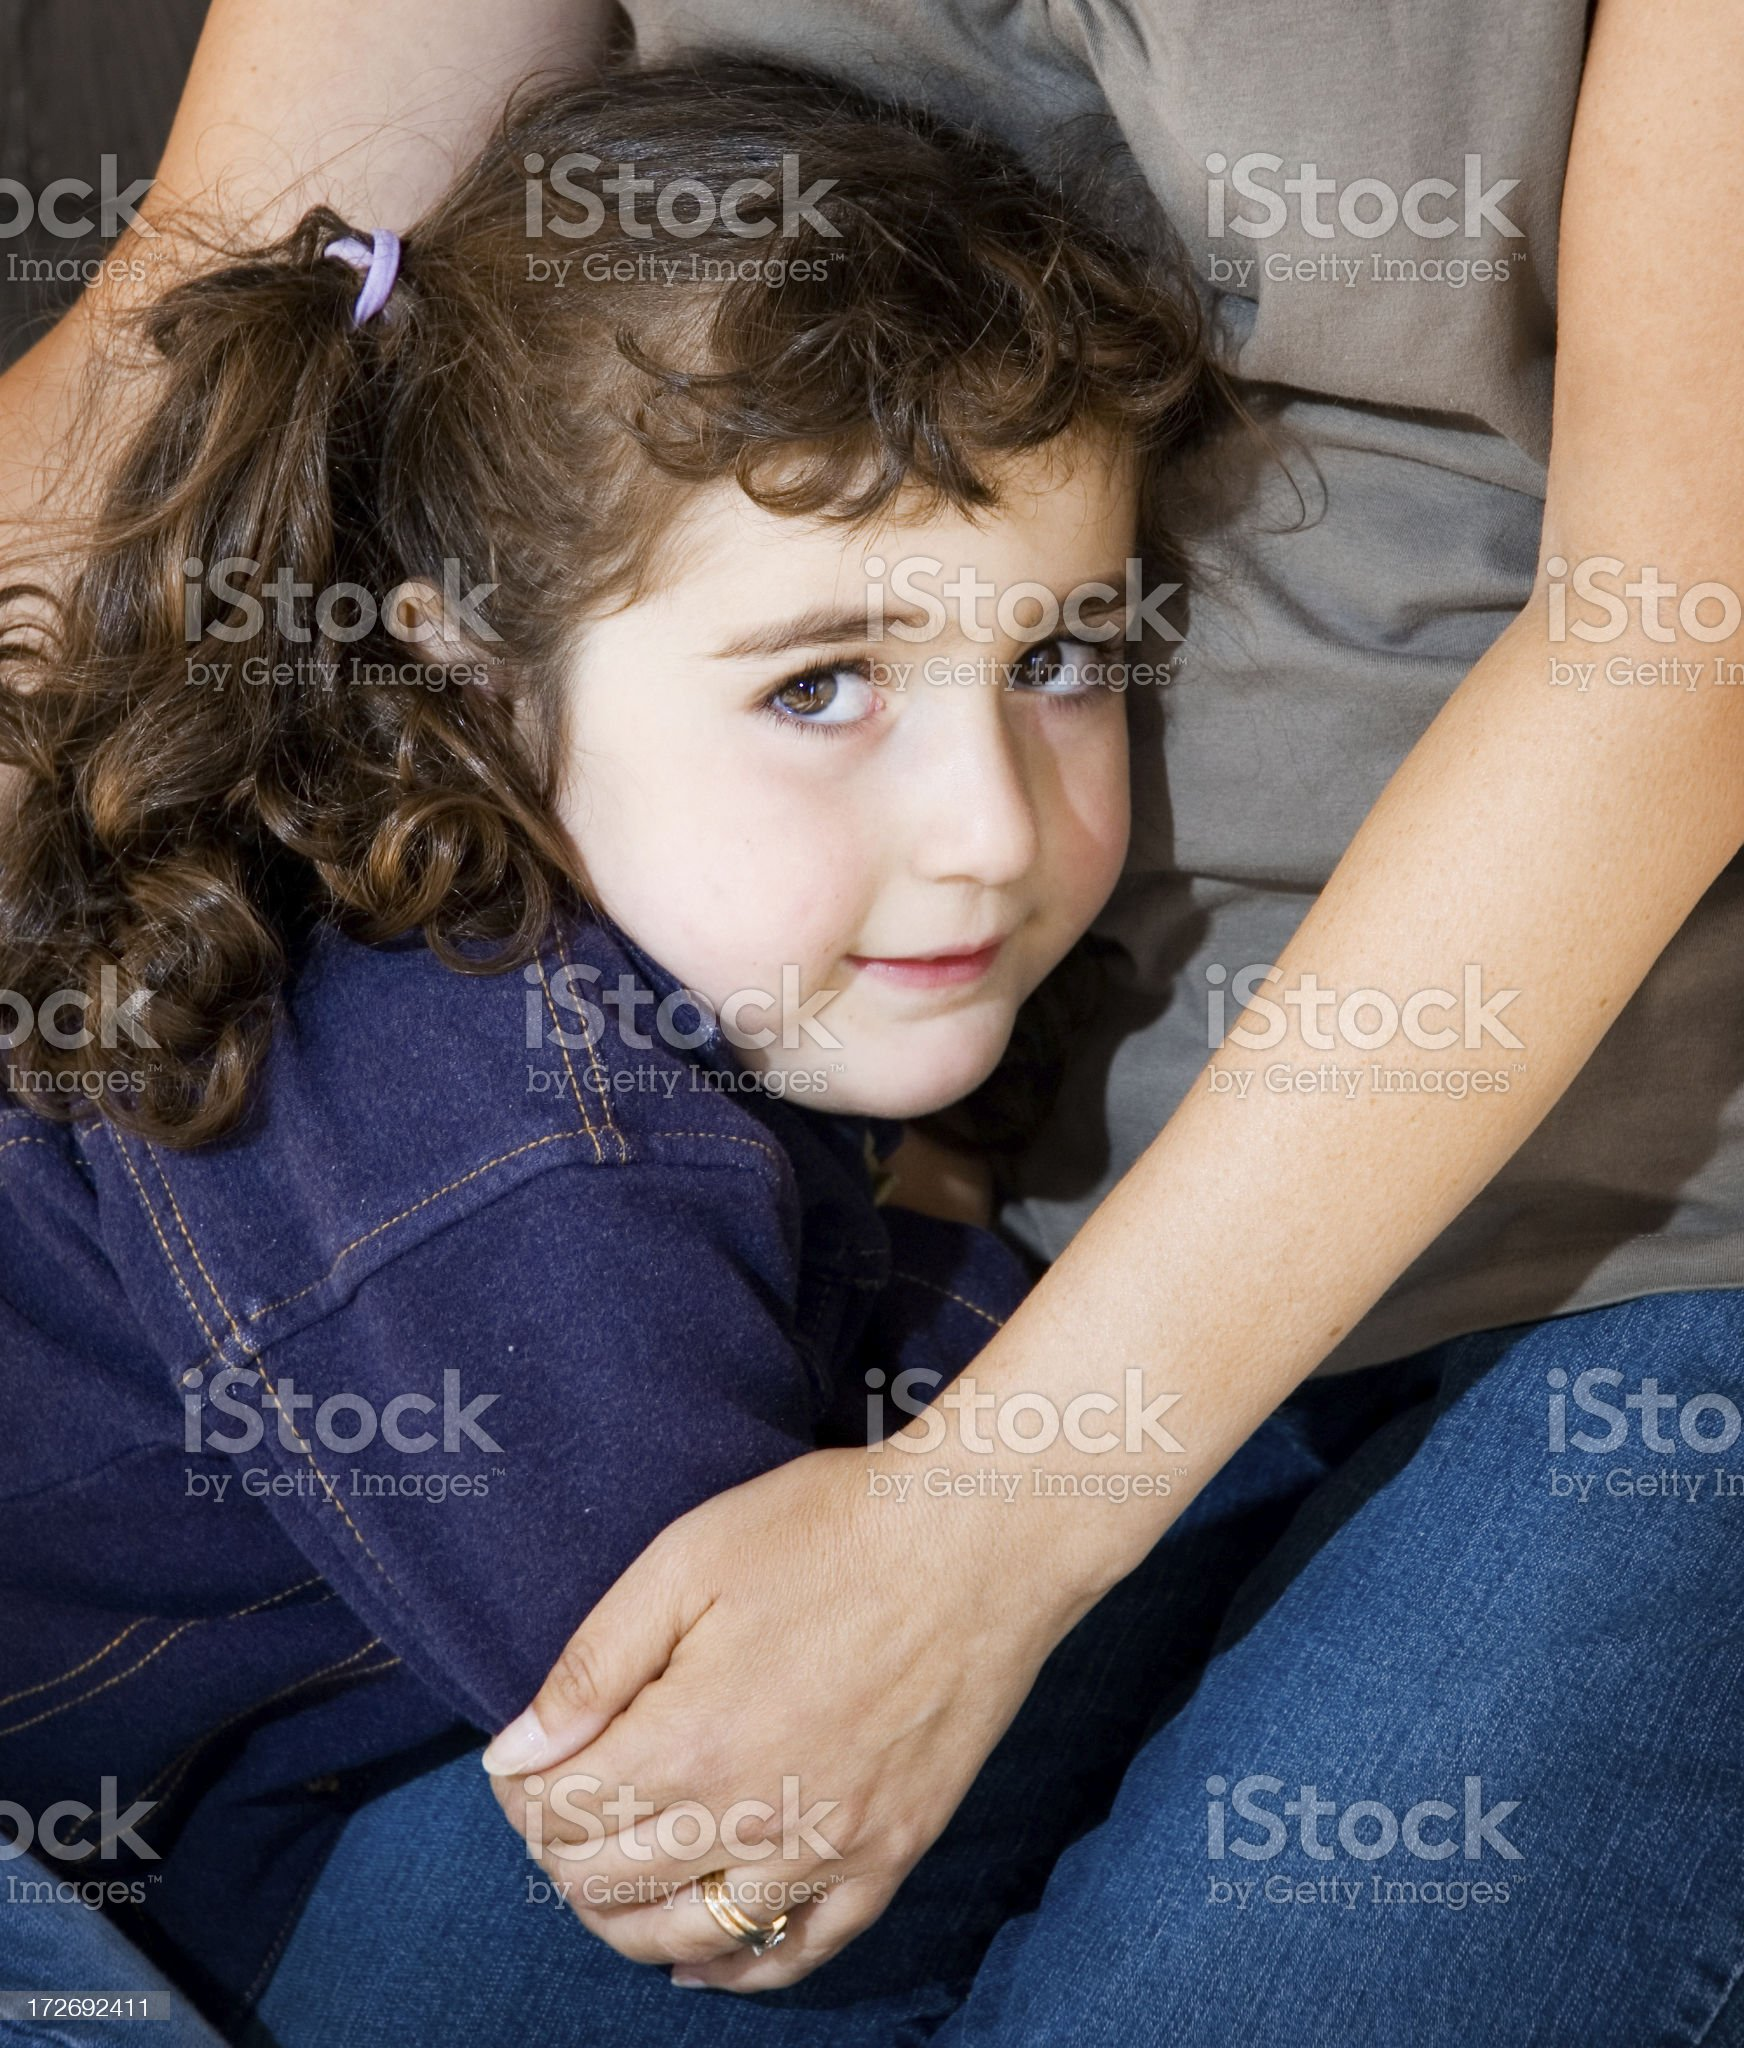 Shy Little Girl in Mother's Arms royalty-free stock photo